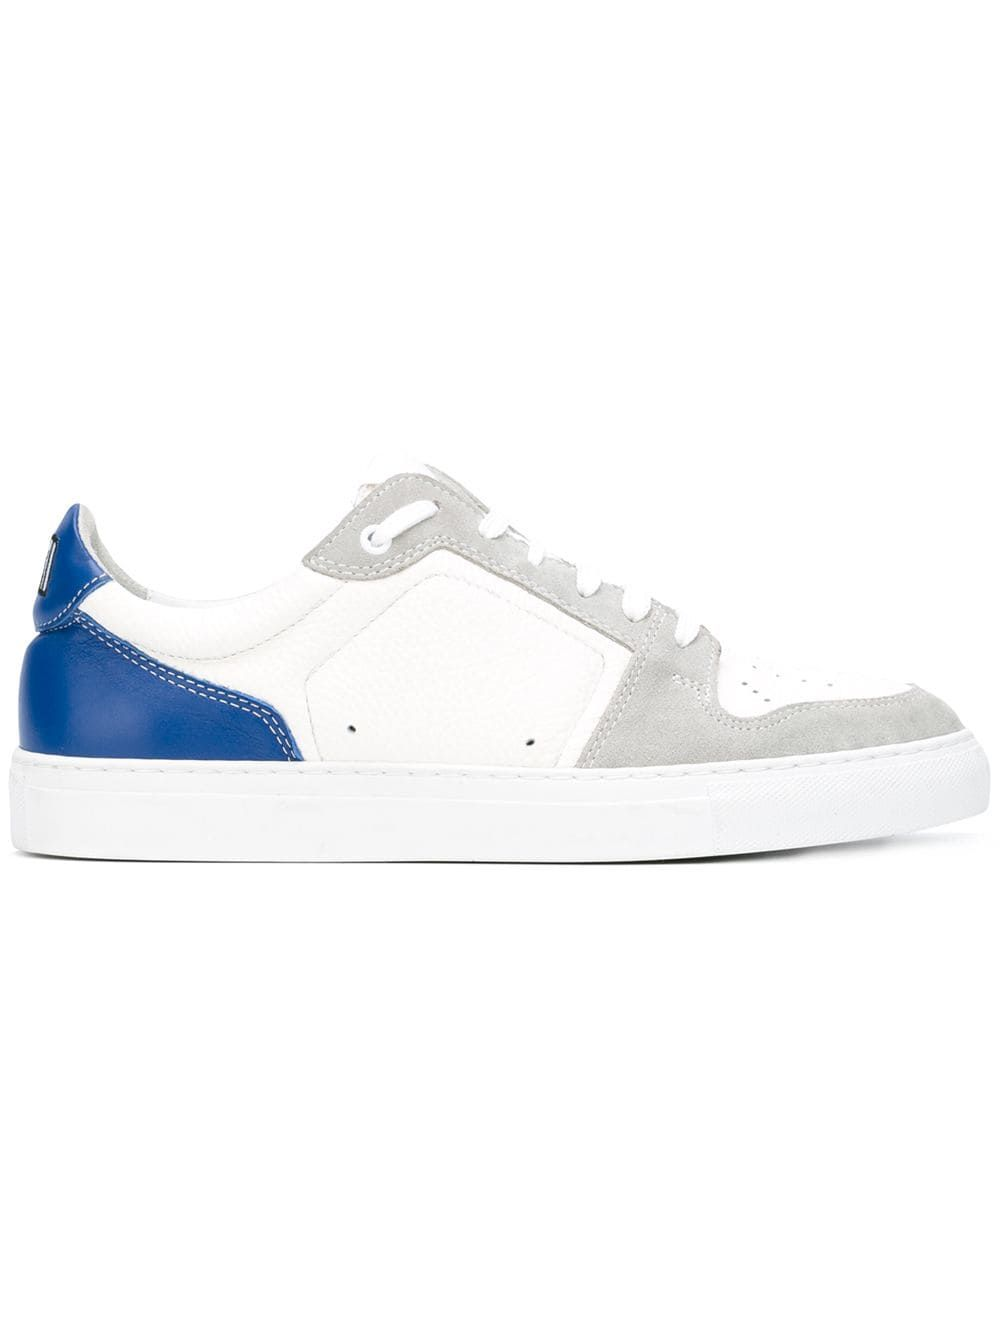 7d161ec42 Ami Alexandre Mattiussi Low-Top Sneakers - White in 2019   Products ...